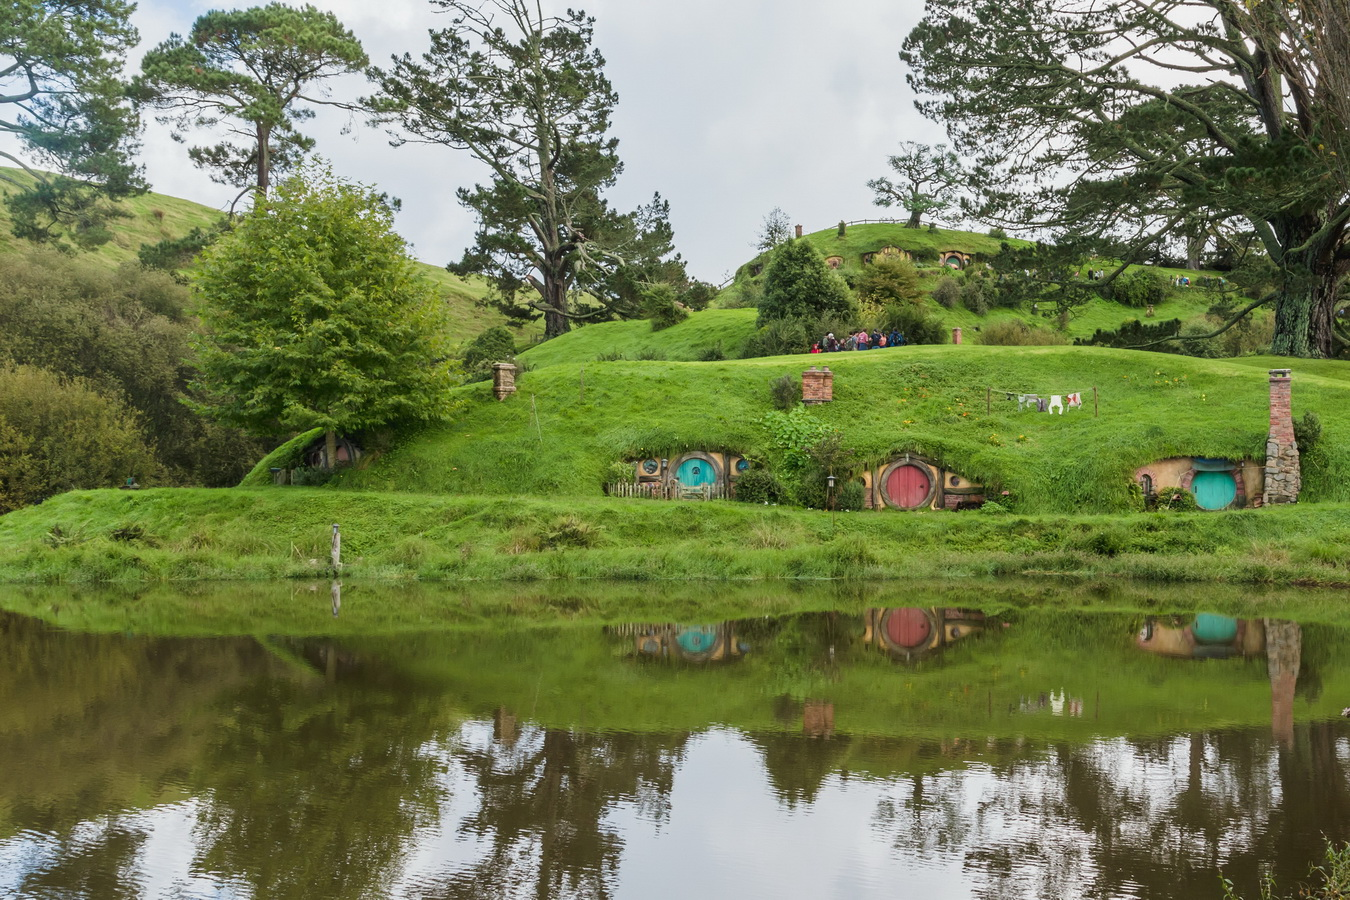 houses,reflection,The Hobbiton, The Shire,Хоббитшир, Удел, Хоббитания, Заселье, Край,Matamata, North Island ,New Zealand